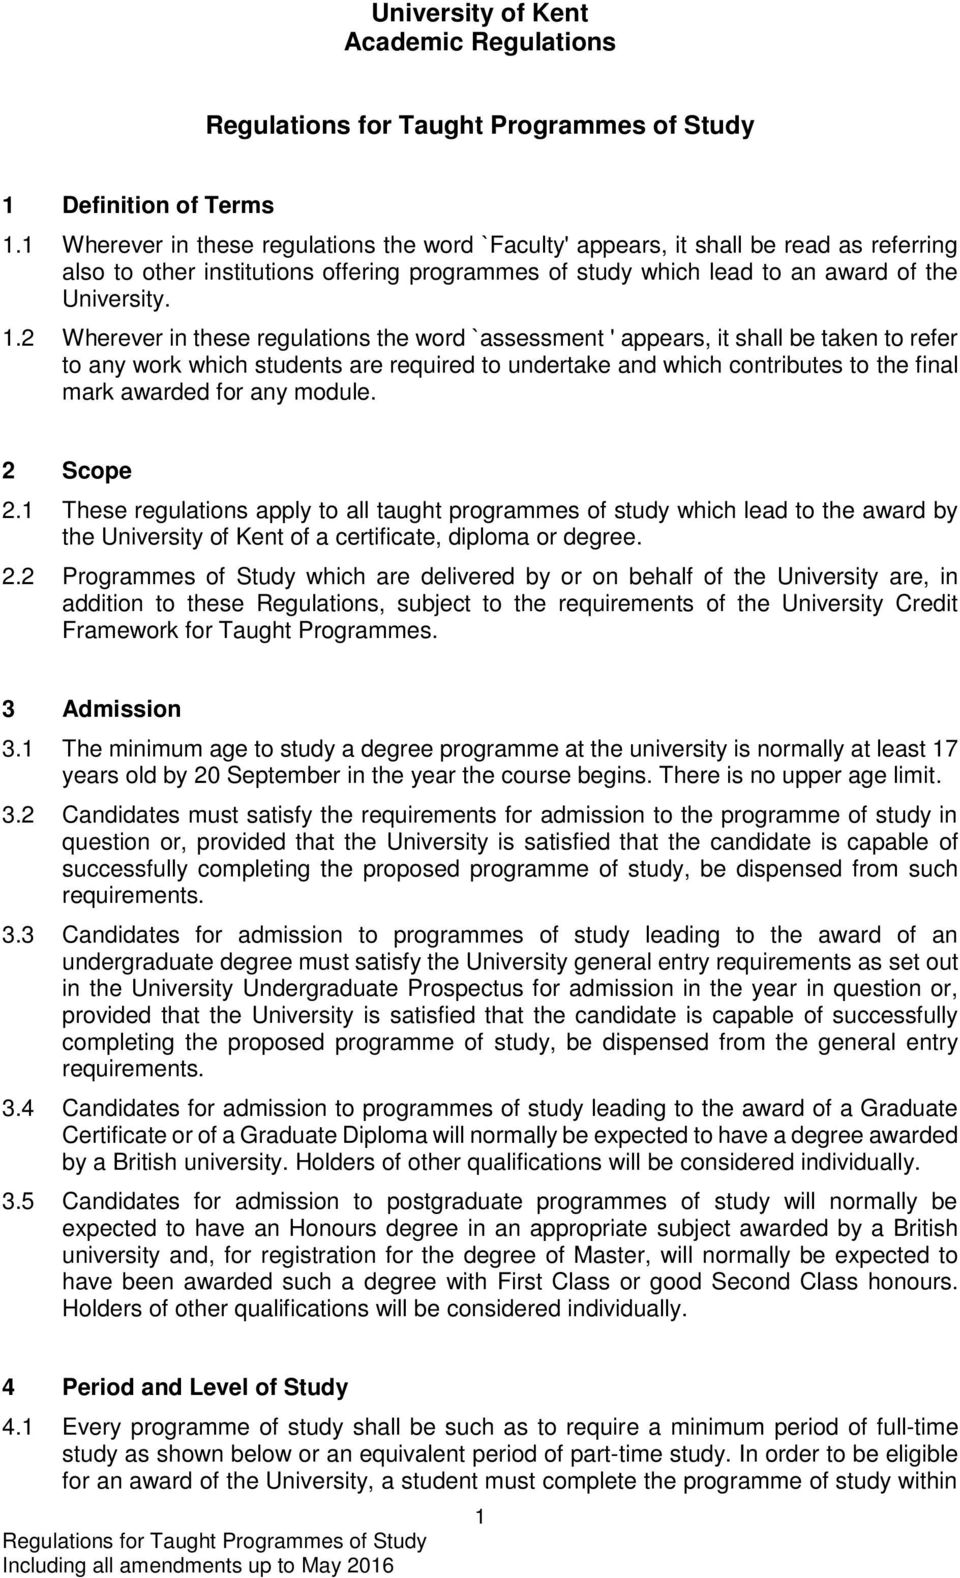 2 Wherever in these regulations the word `assessment ' appears, it shall be taken to refer to any work which students are required to undertake and which contributes to the final mark awarded for any